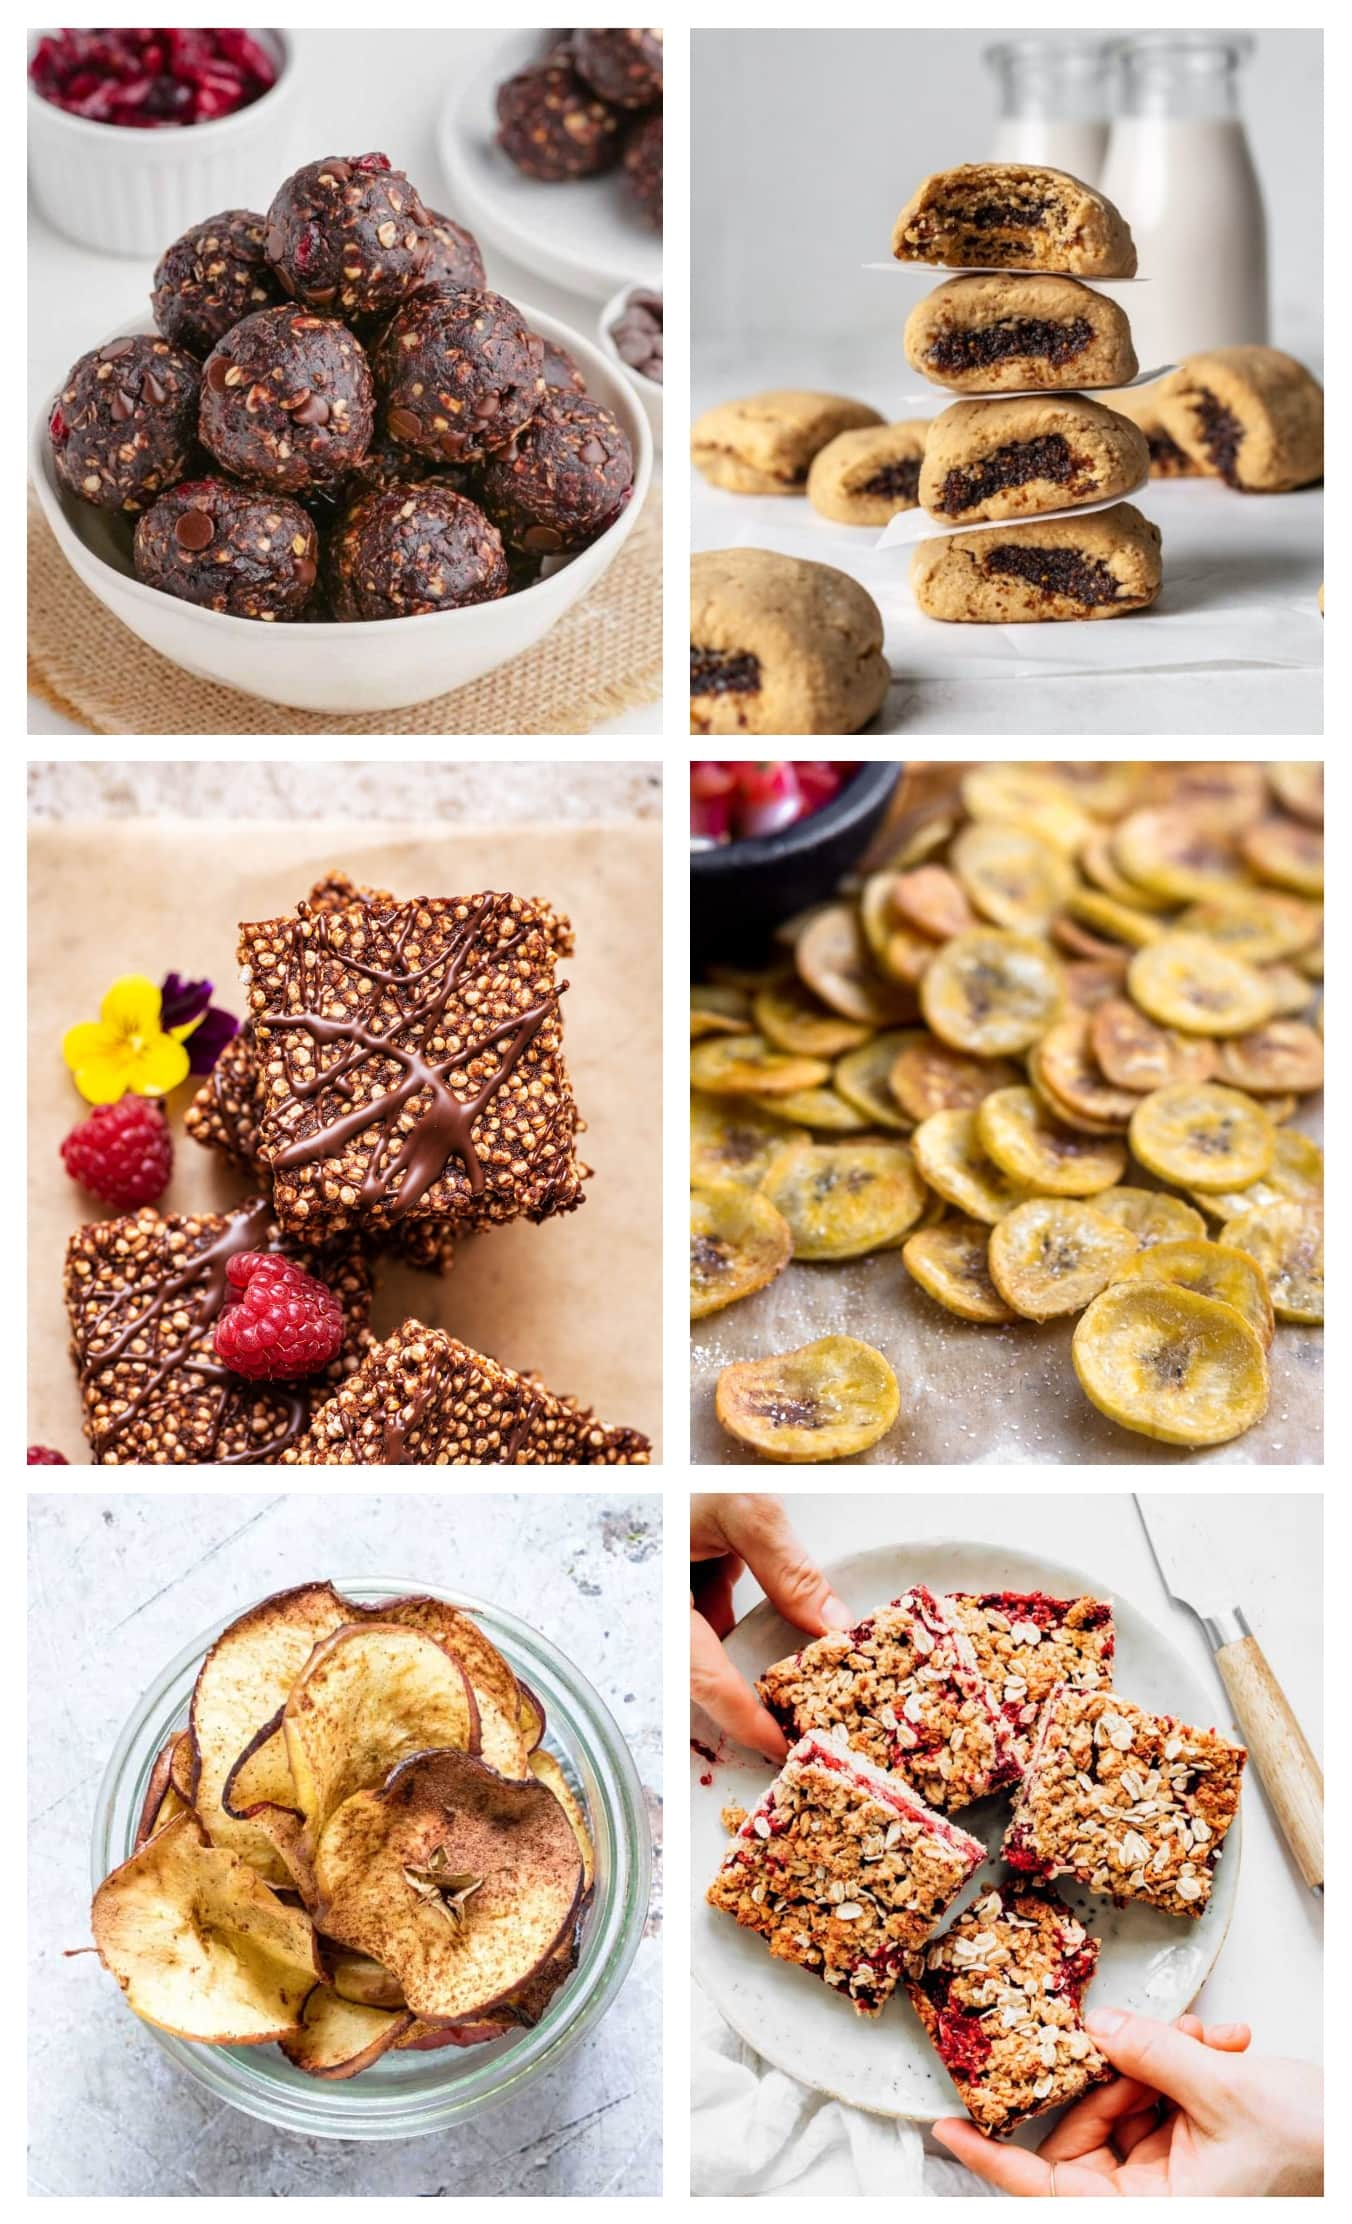 photo collage of various allergy friendly lunchbox snacks